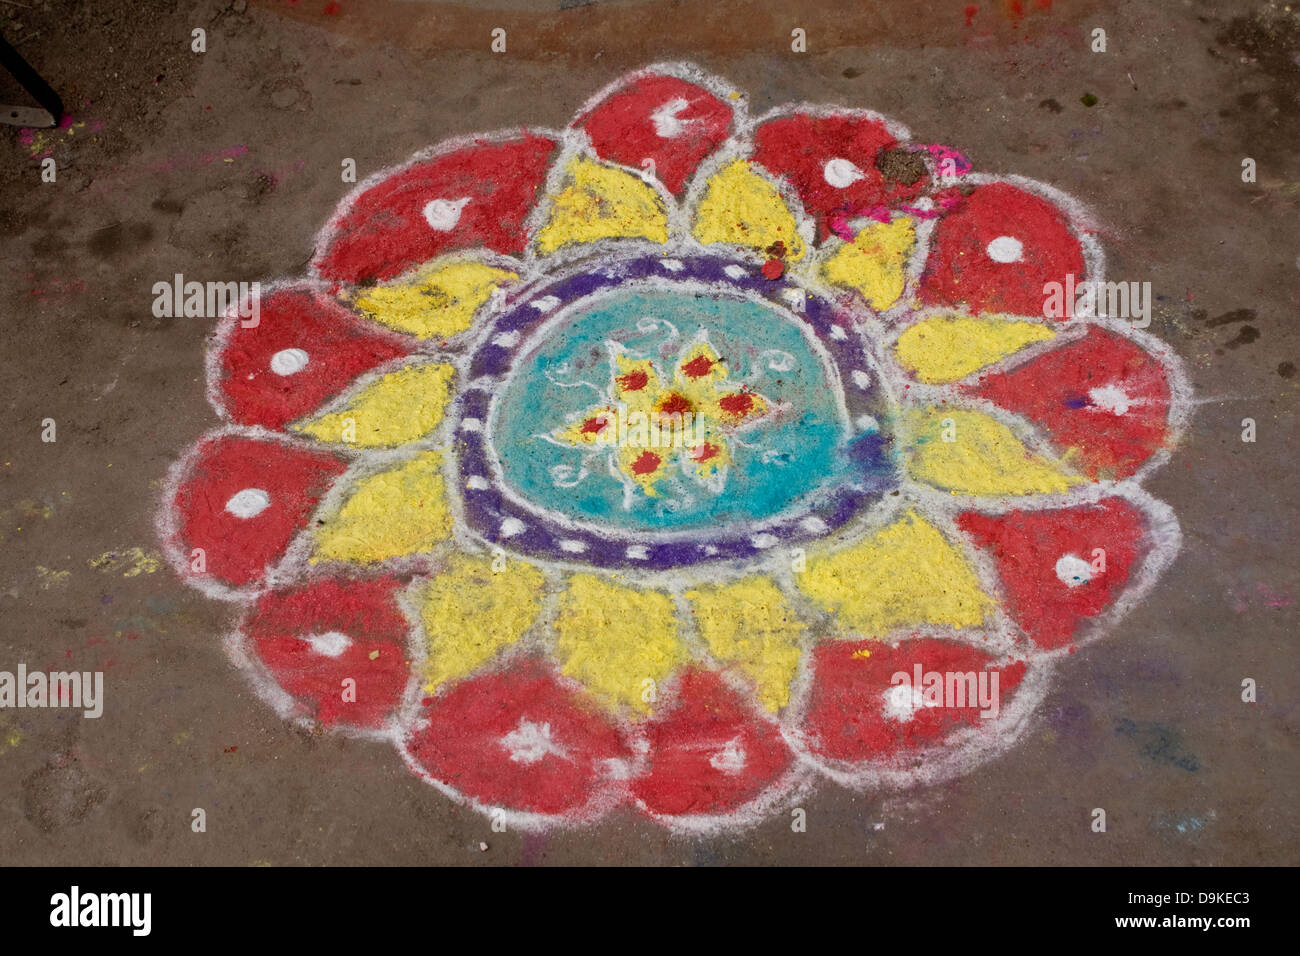 Asia, India,Tamil Nadu, Kanchipuram, traditional drawing in front of a house entrance - Stock Image